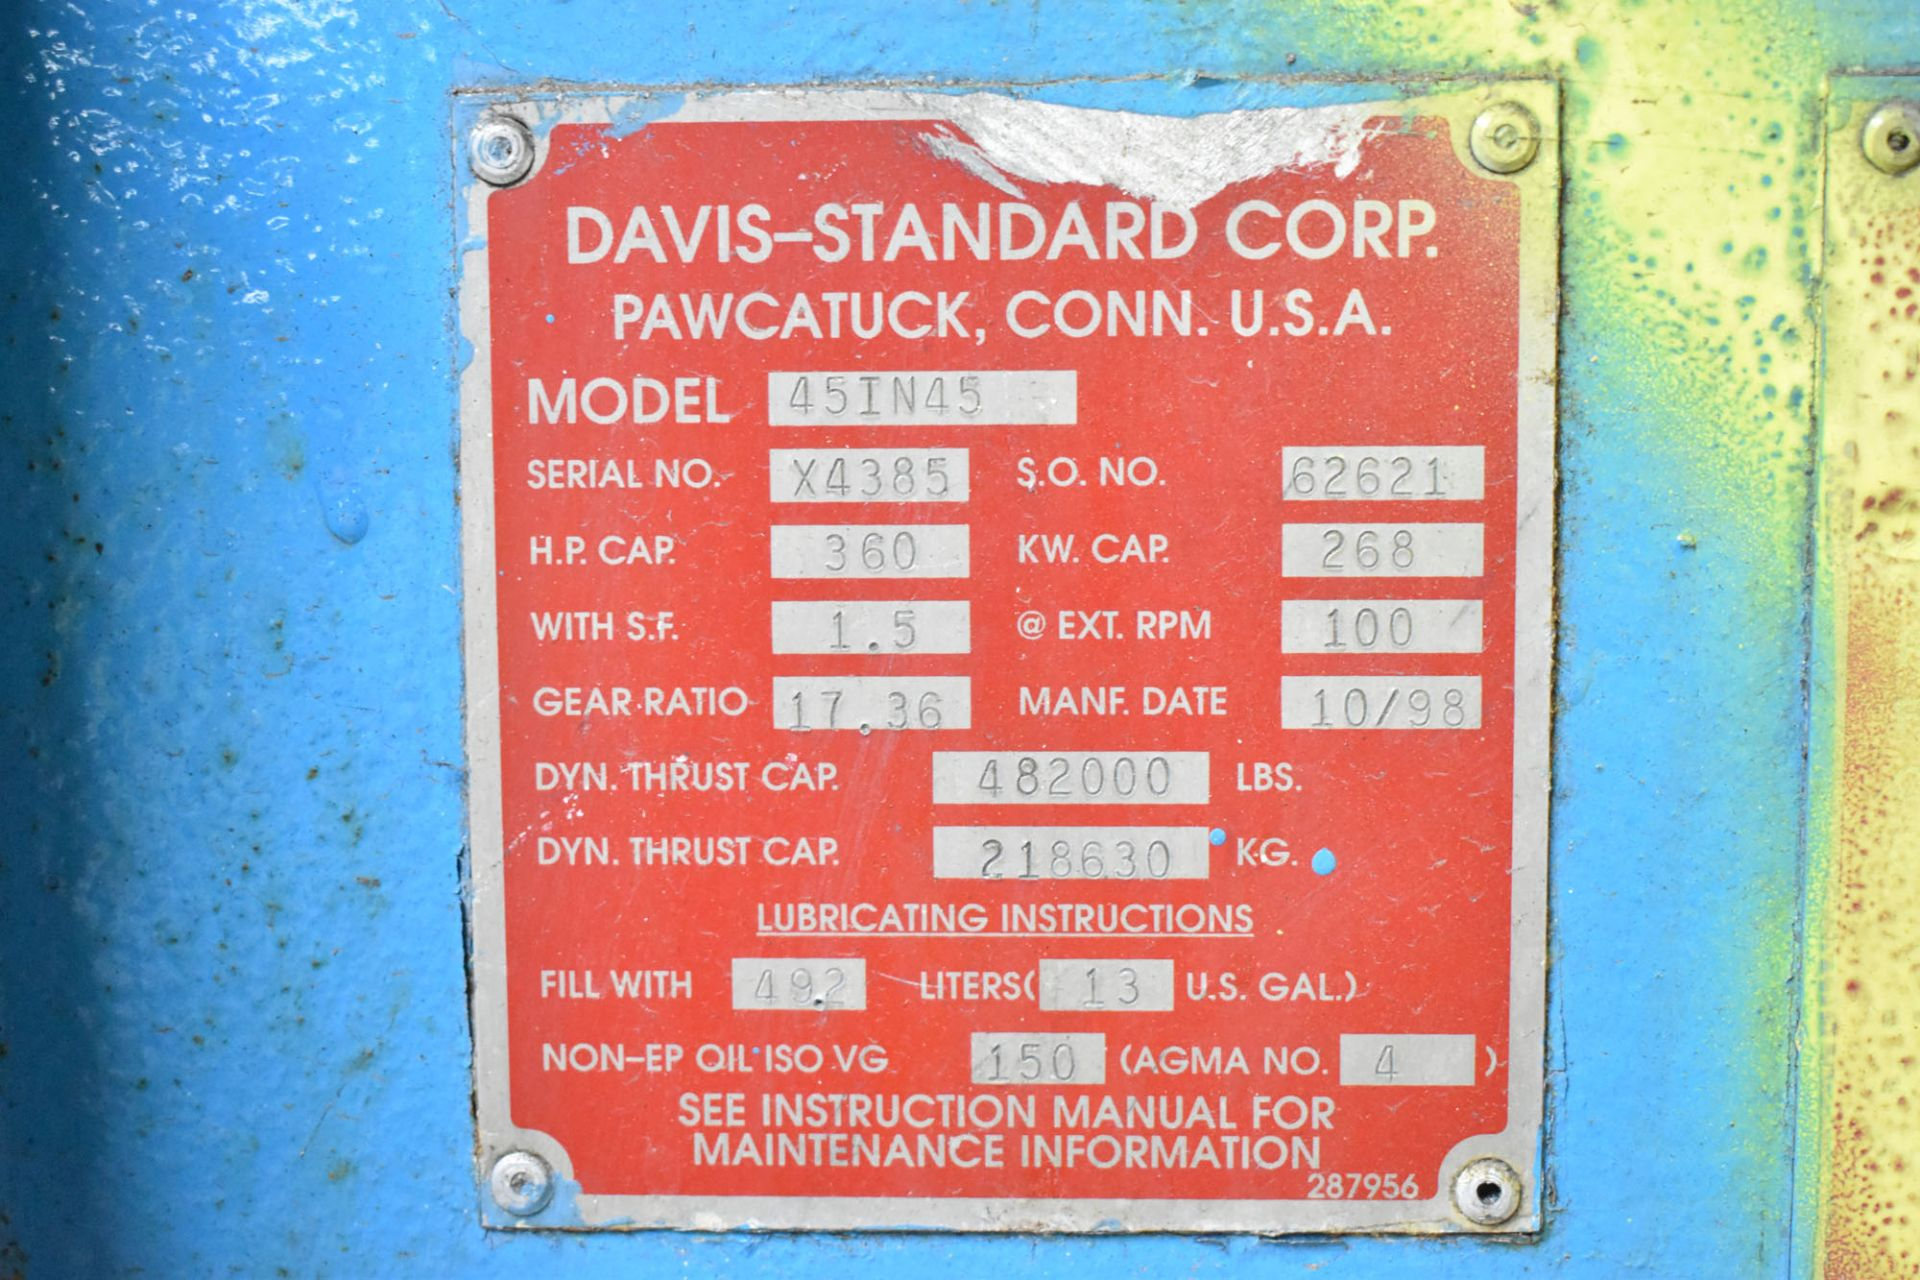 "DAVIS STANDARD (2003) 45IN45H 4.5"" CAPACITY SINGLE SCREW PLASTIC EXTRUDER WITH 360 HP RATED GEARBOX, - Image 6 of 6"